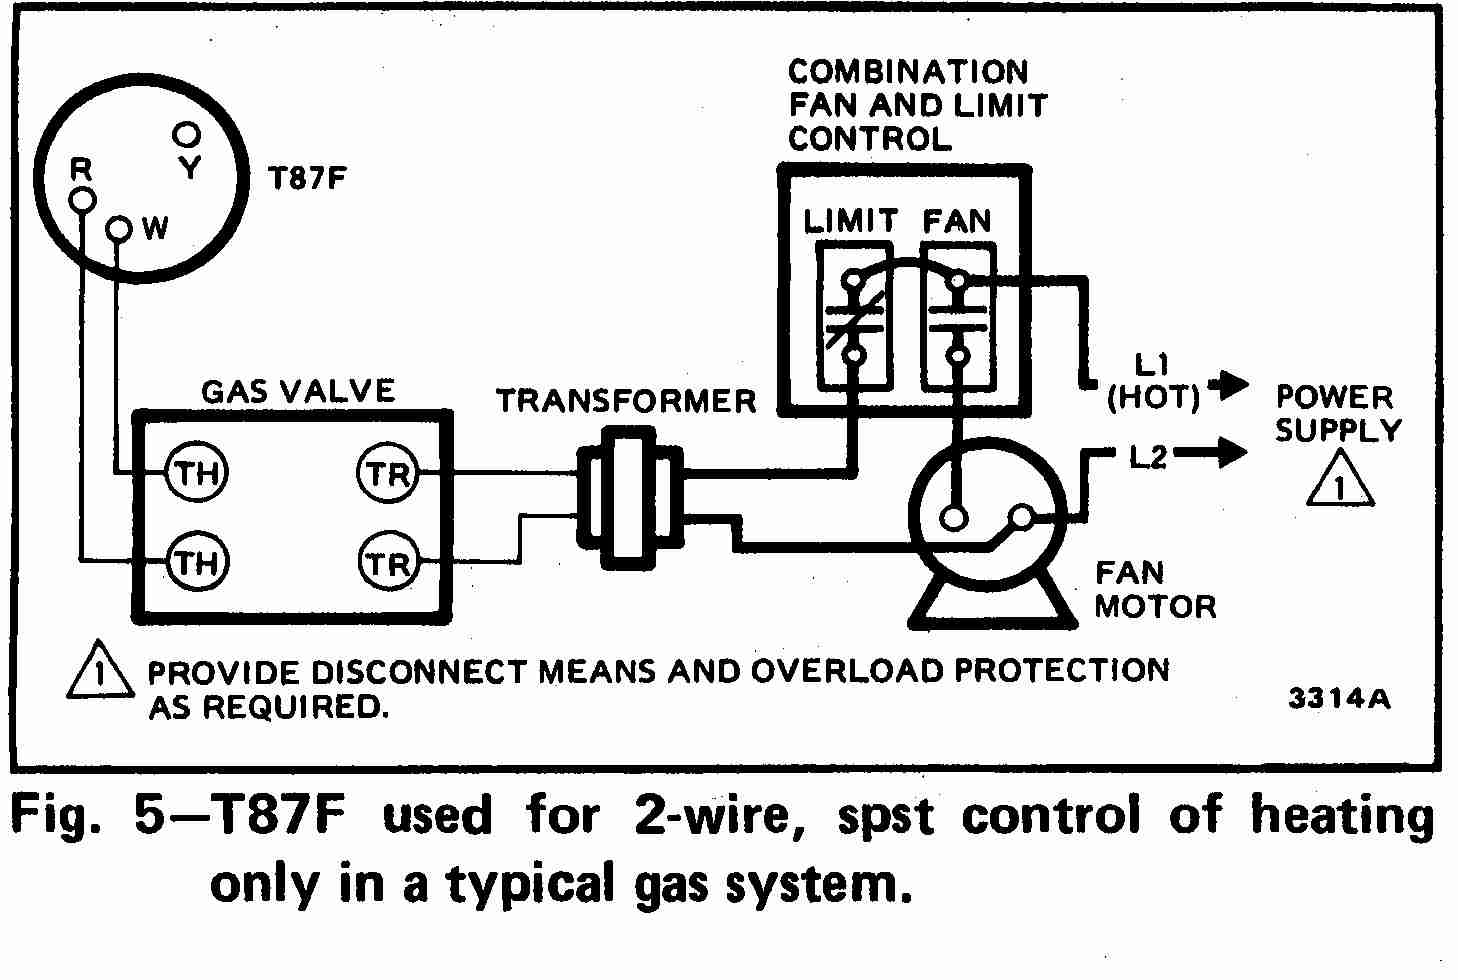 TT_T87F_0002_2Wg_DJF room thermostat wiring diagrams for hvac systems imit boiler thermostat wiring diagram at soozxer.org